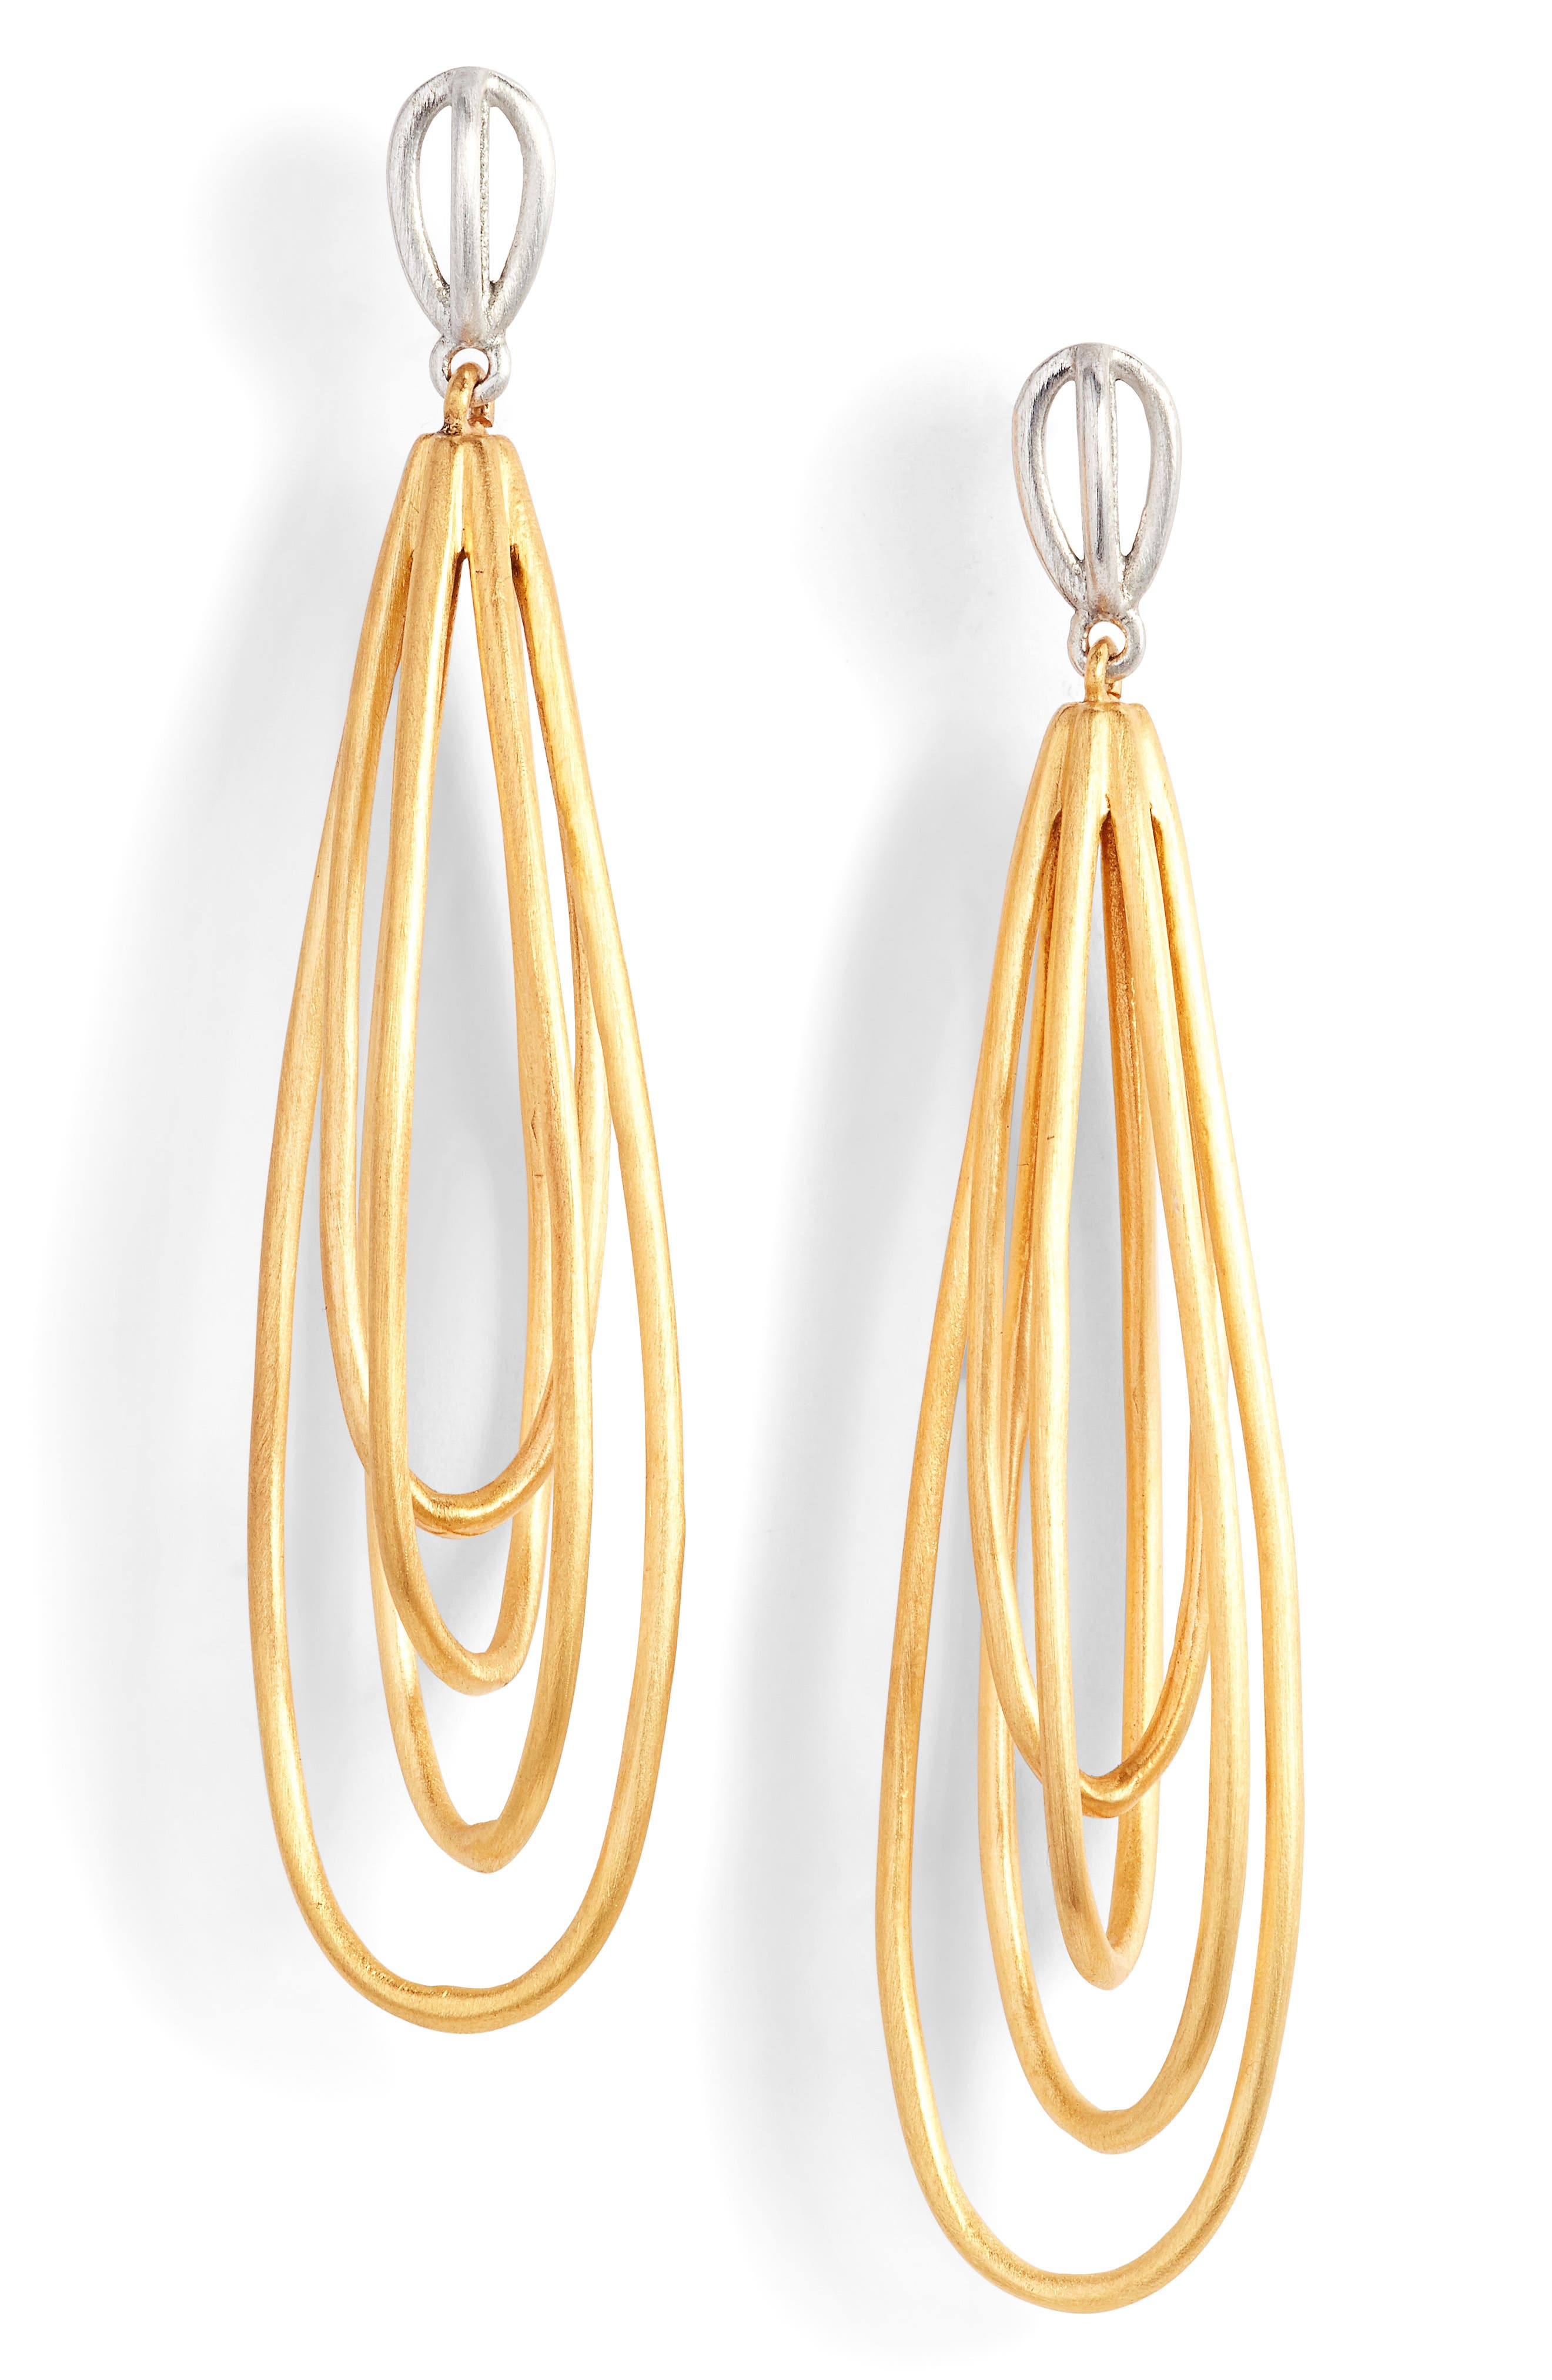 Inerlacing Drop Earrings,                         Main,                         color, Gold/ Silver